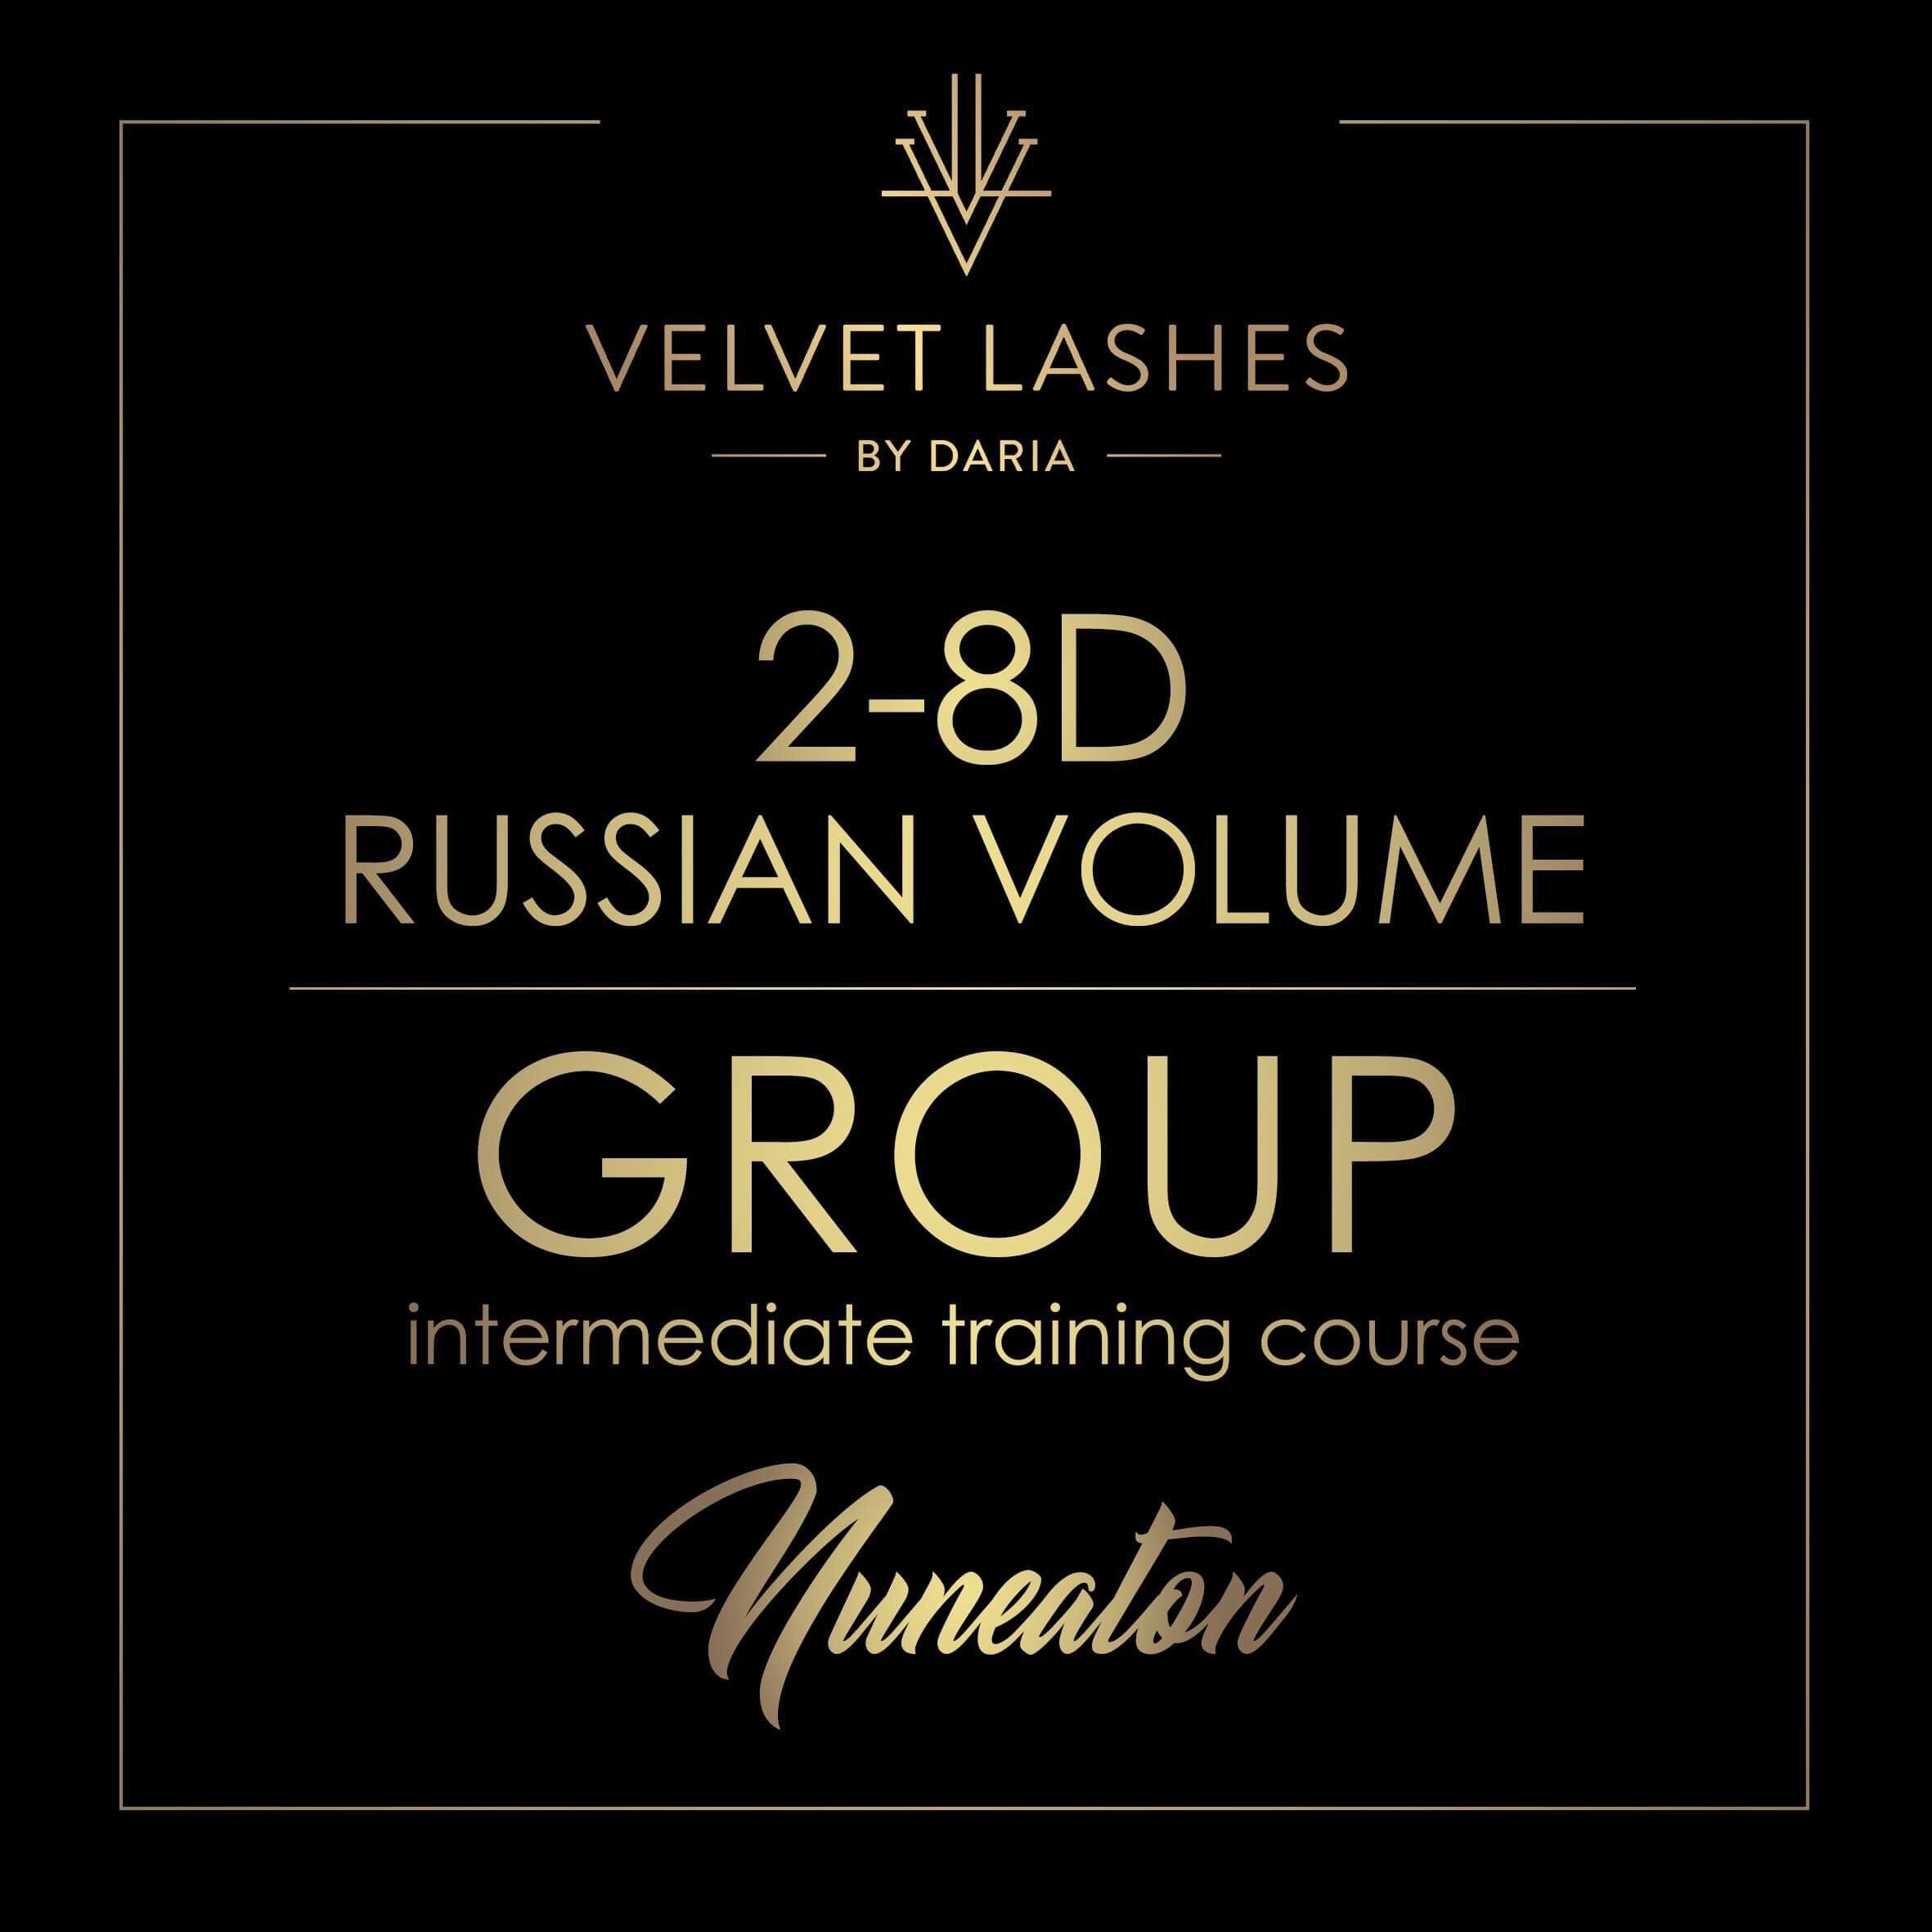 23rd March 2-8d Russian Volume TRAINING COURSE IN NUNEATON (UK)